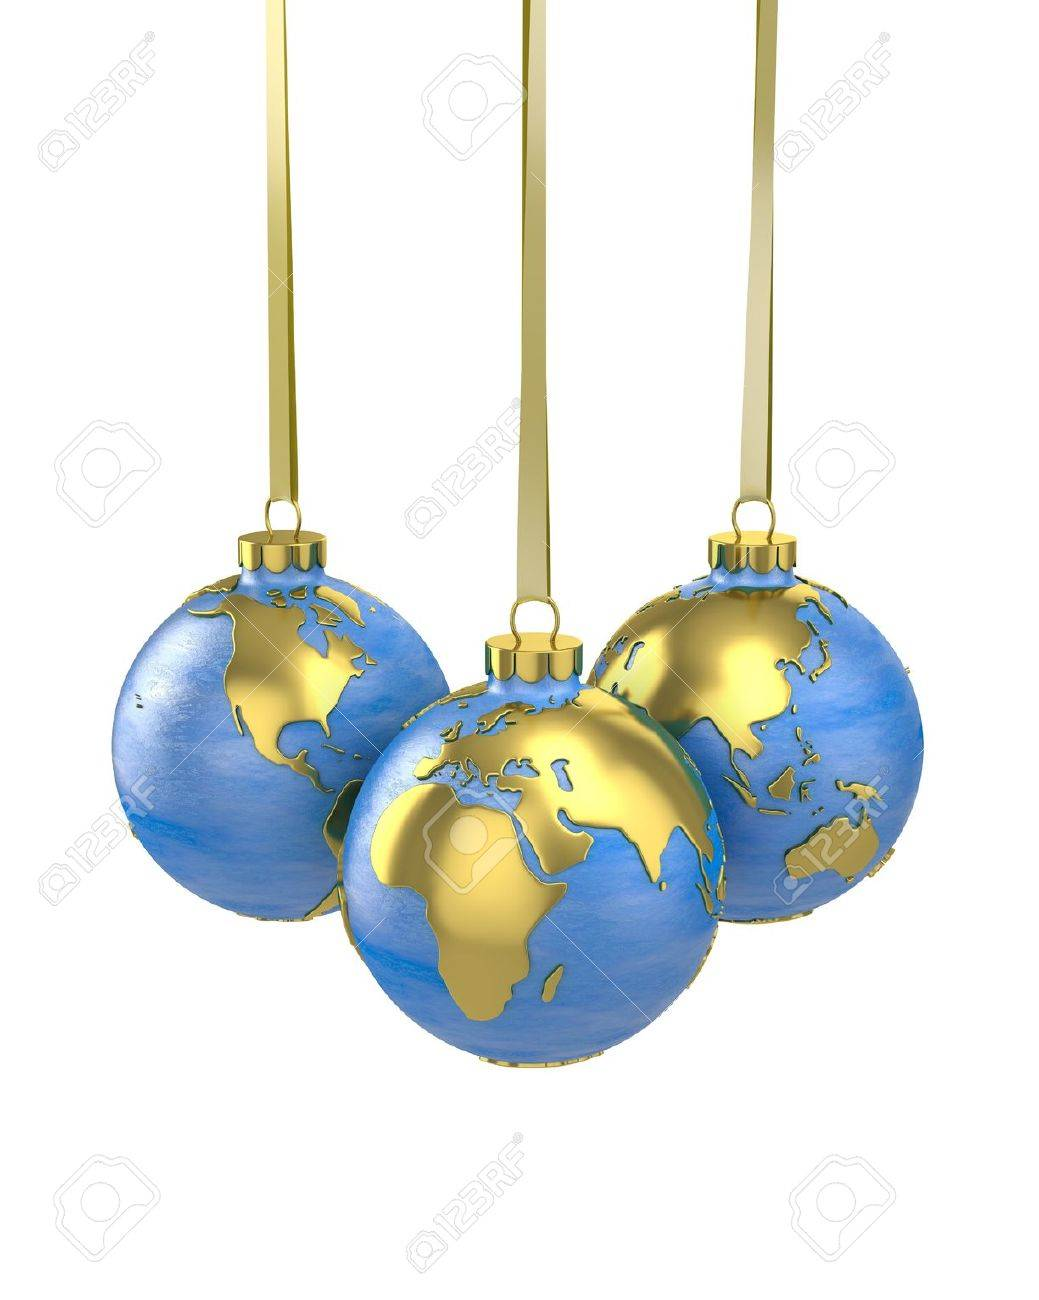 World globe christmas ornaments - Bauble World Three Christmas Balls Shaped As Globe Or Planet Isolated On White Background